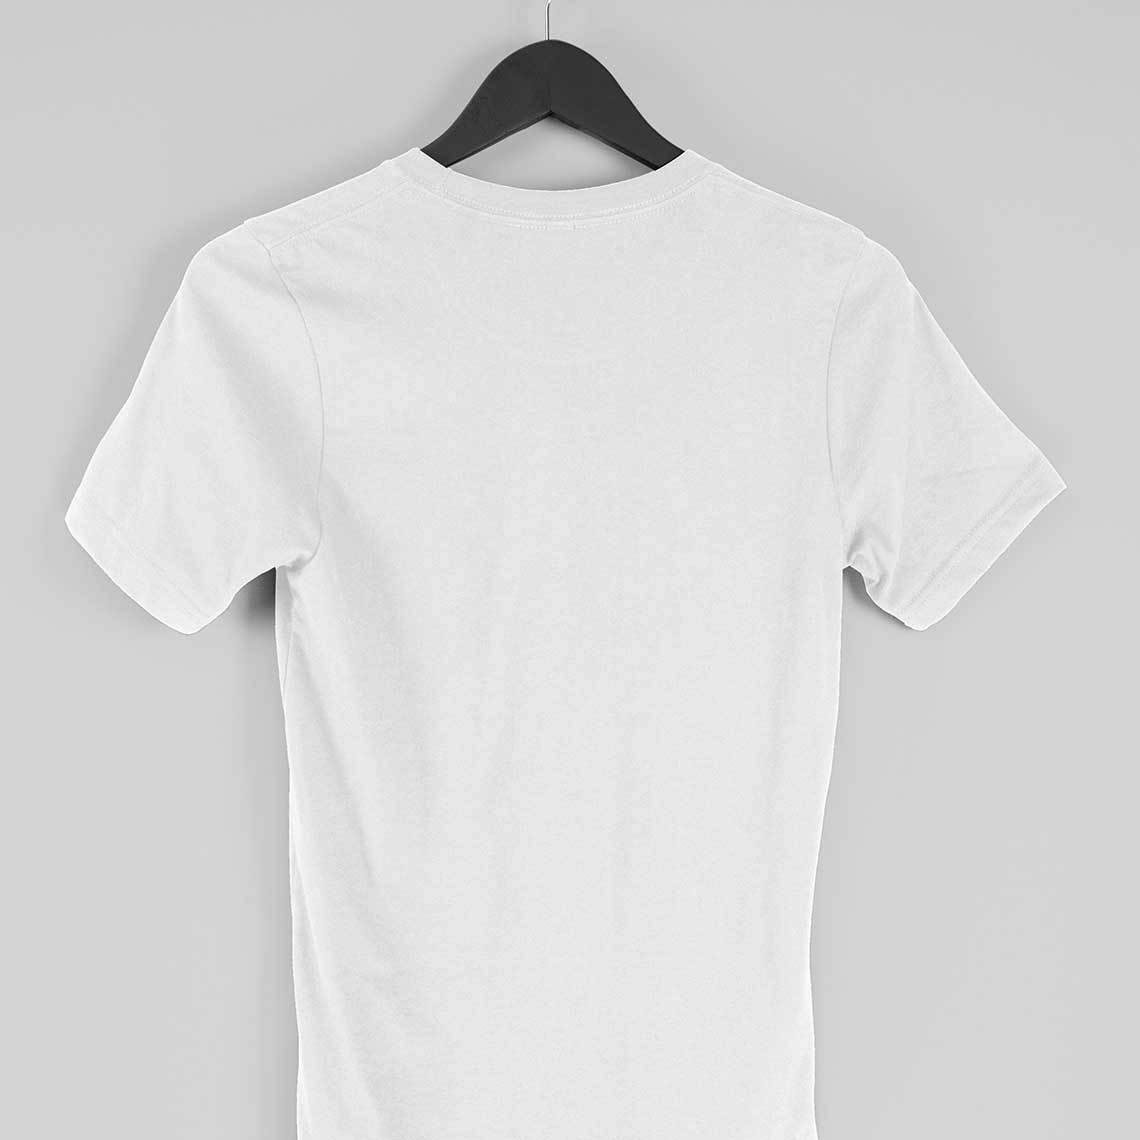 T-shirt round neck city vibes for fashion lovers